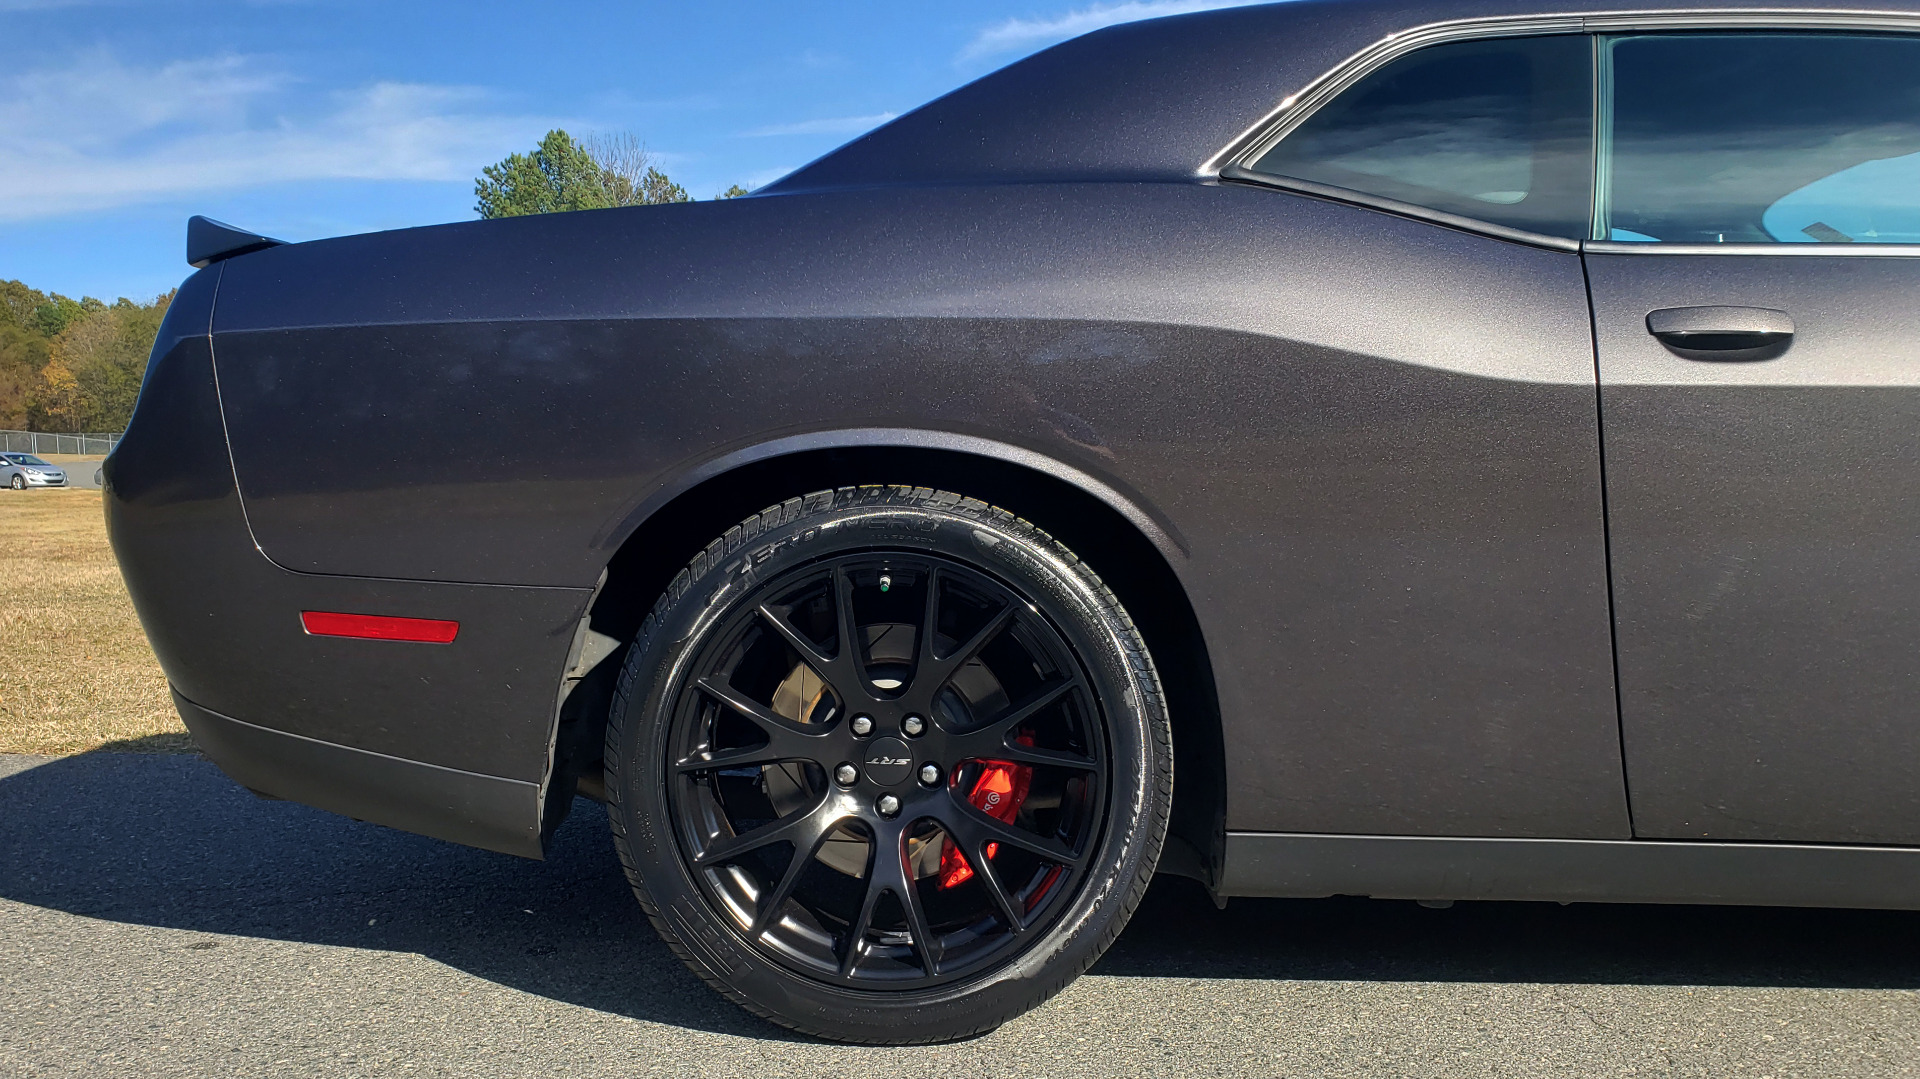 Used 2016 Dodge CHALLENGER SRT HELLCAT COUPE / 6-SPD MAN / NAV / SRT APPS / REARVIEW for sale Sold at Formula Imports in Charlotte NC 28227 14